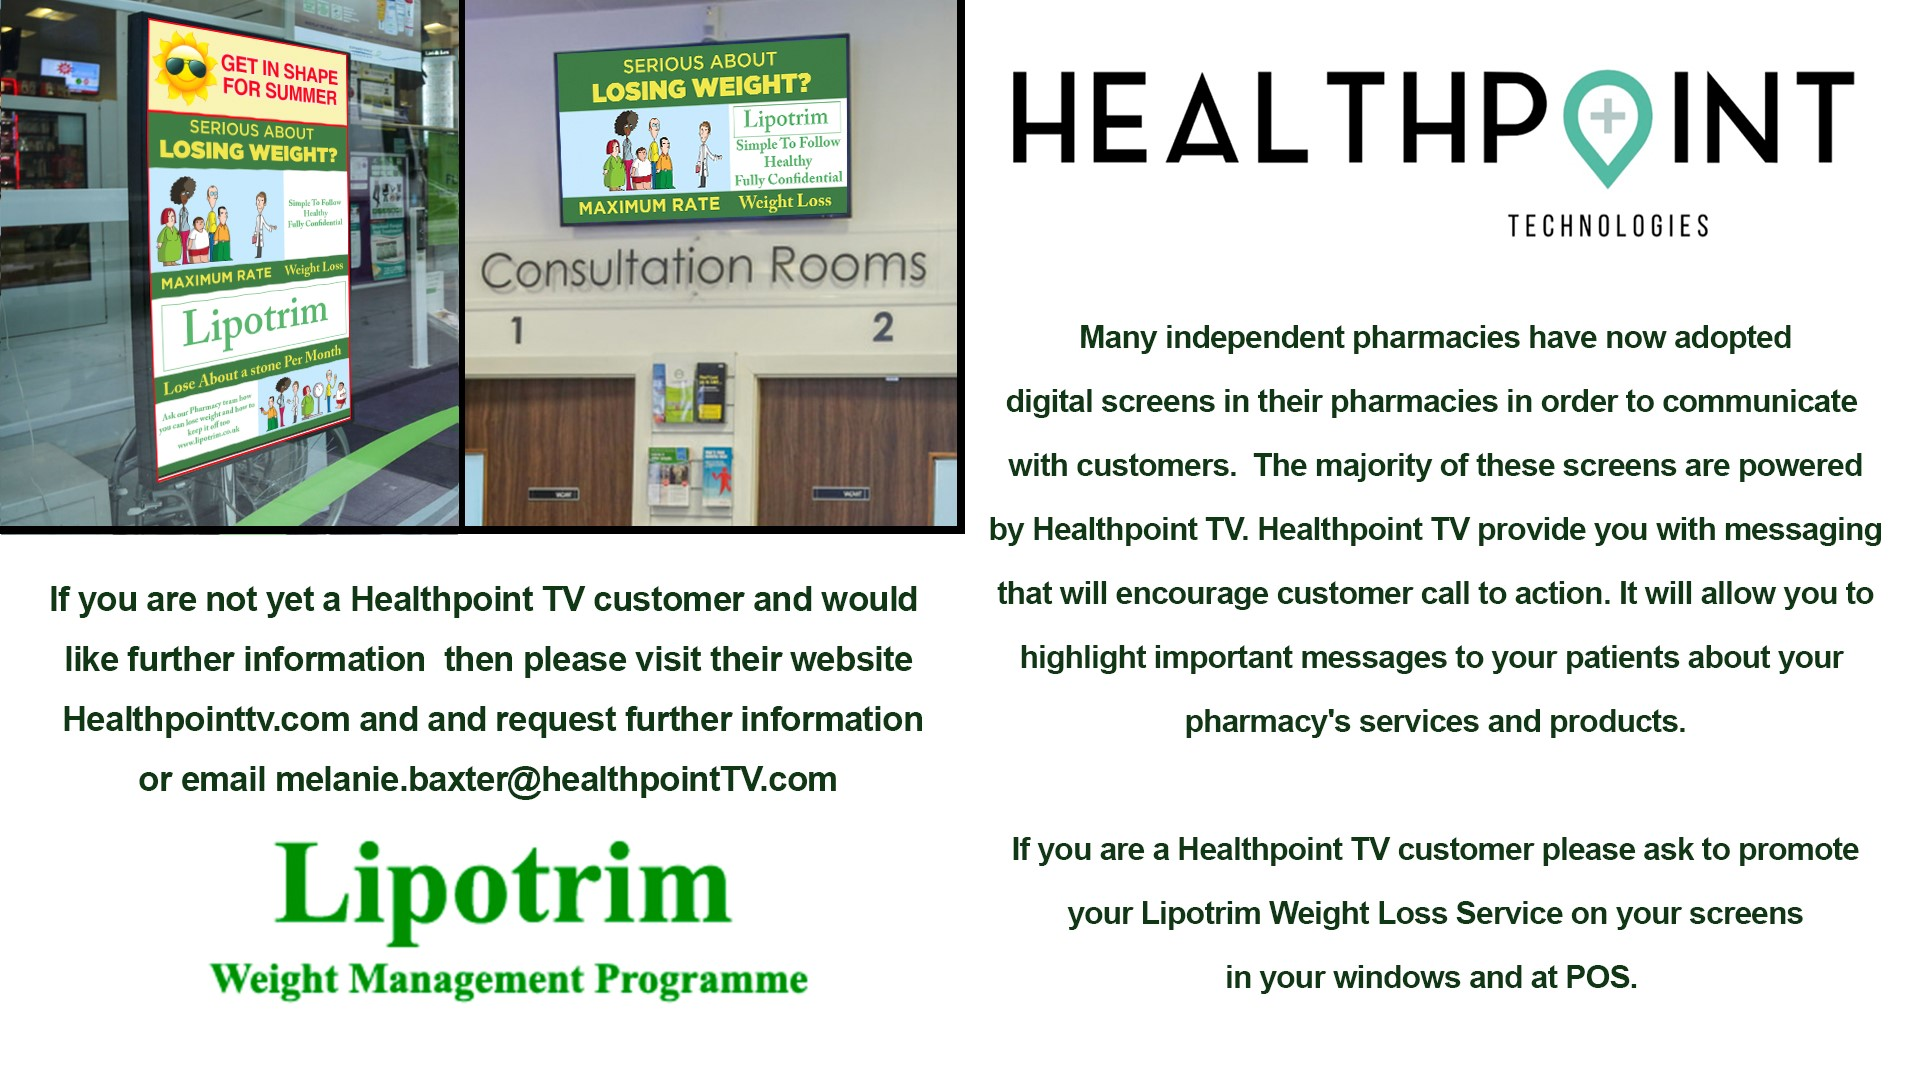 Healthpoint TV helps promote the Lipotrim Pharmacy weight management programme